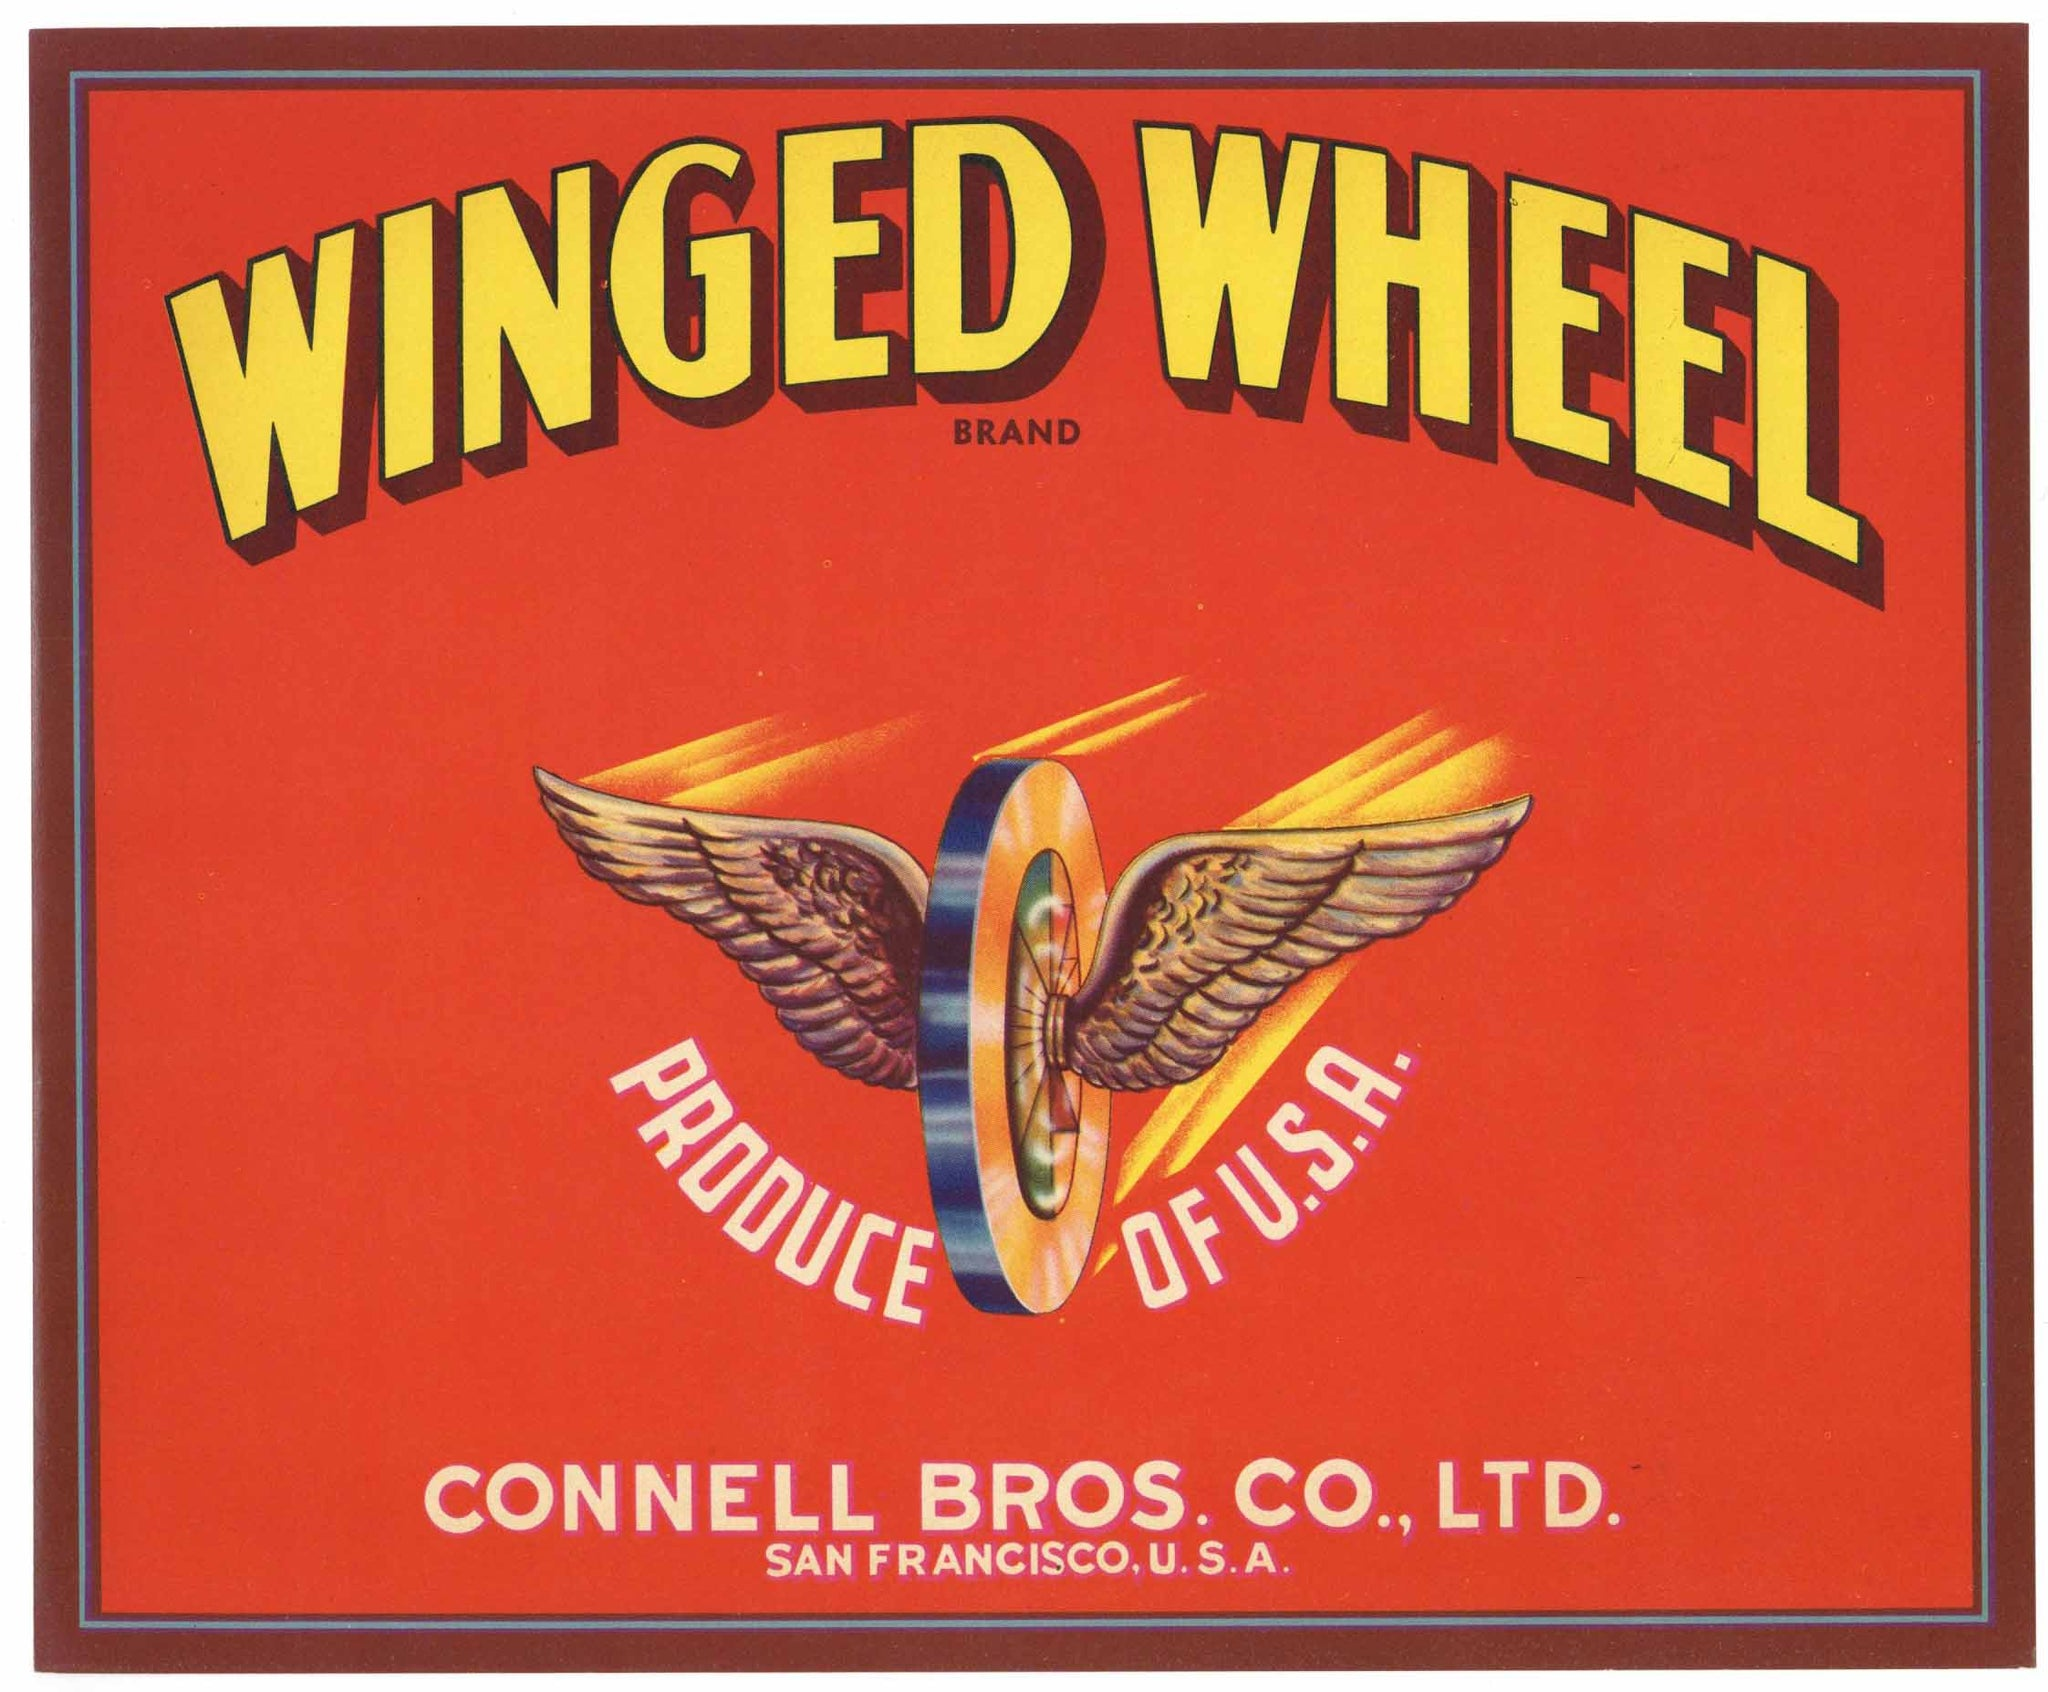 Winged Wheel Brand Vintage Apple Crate Label